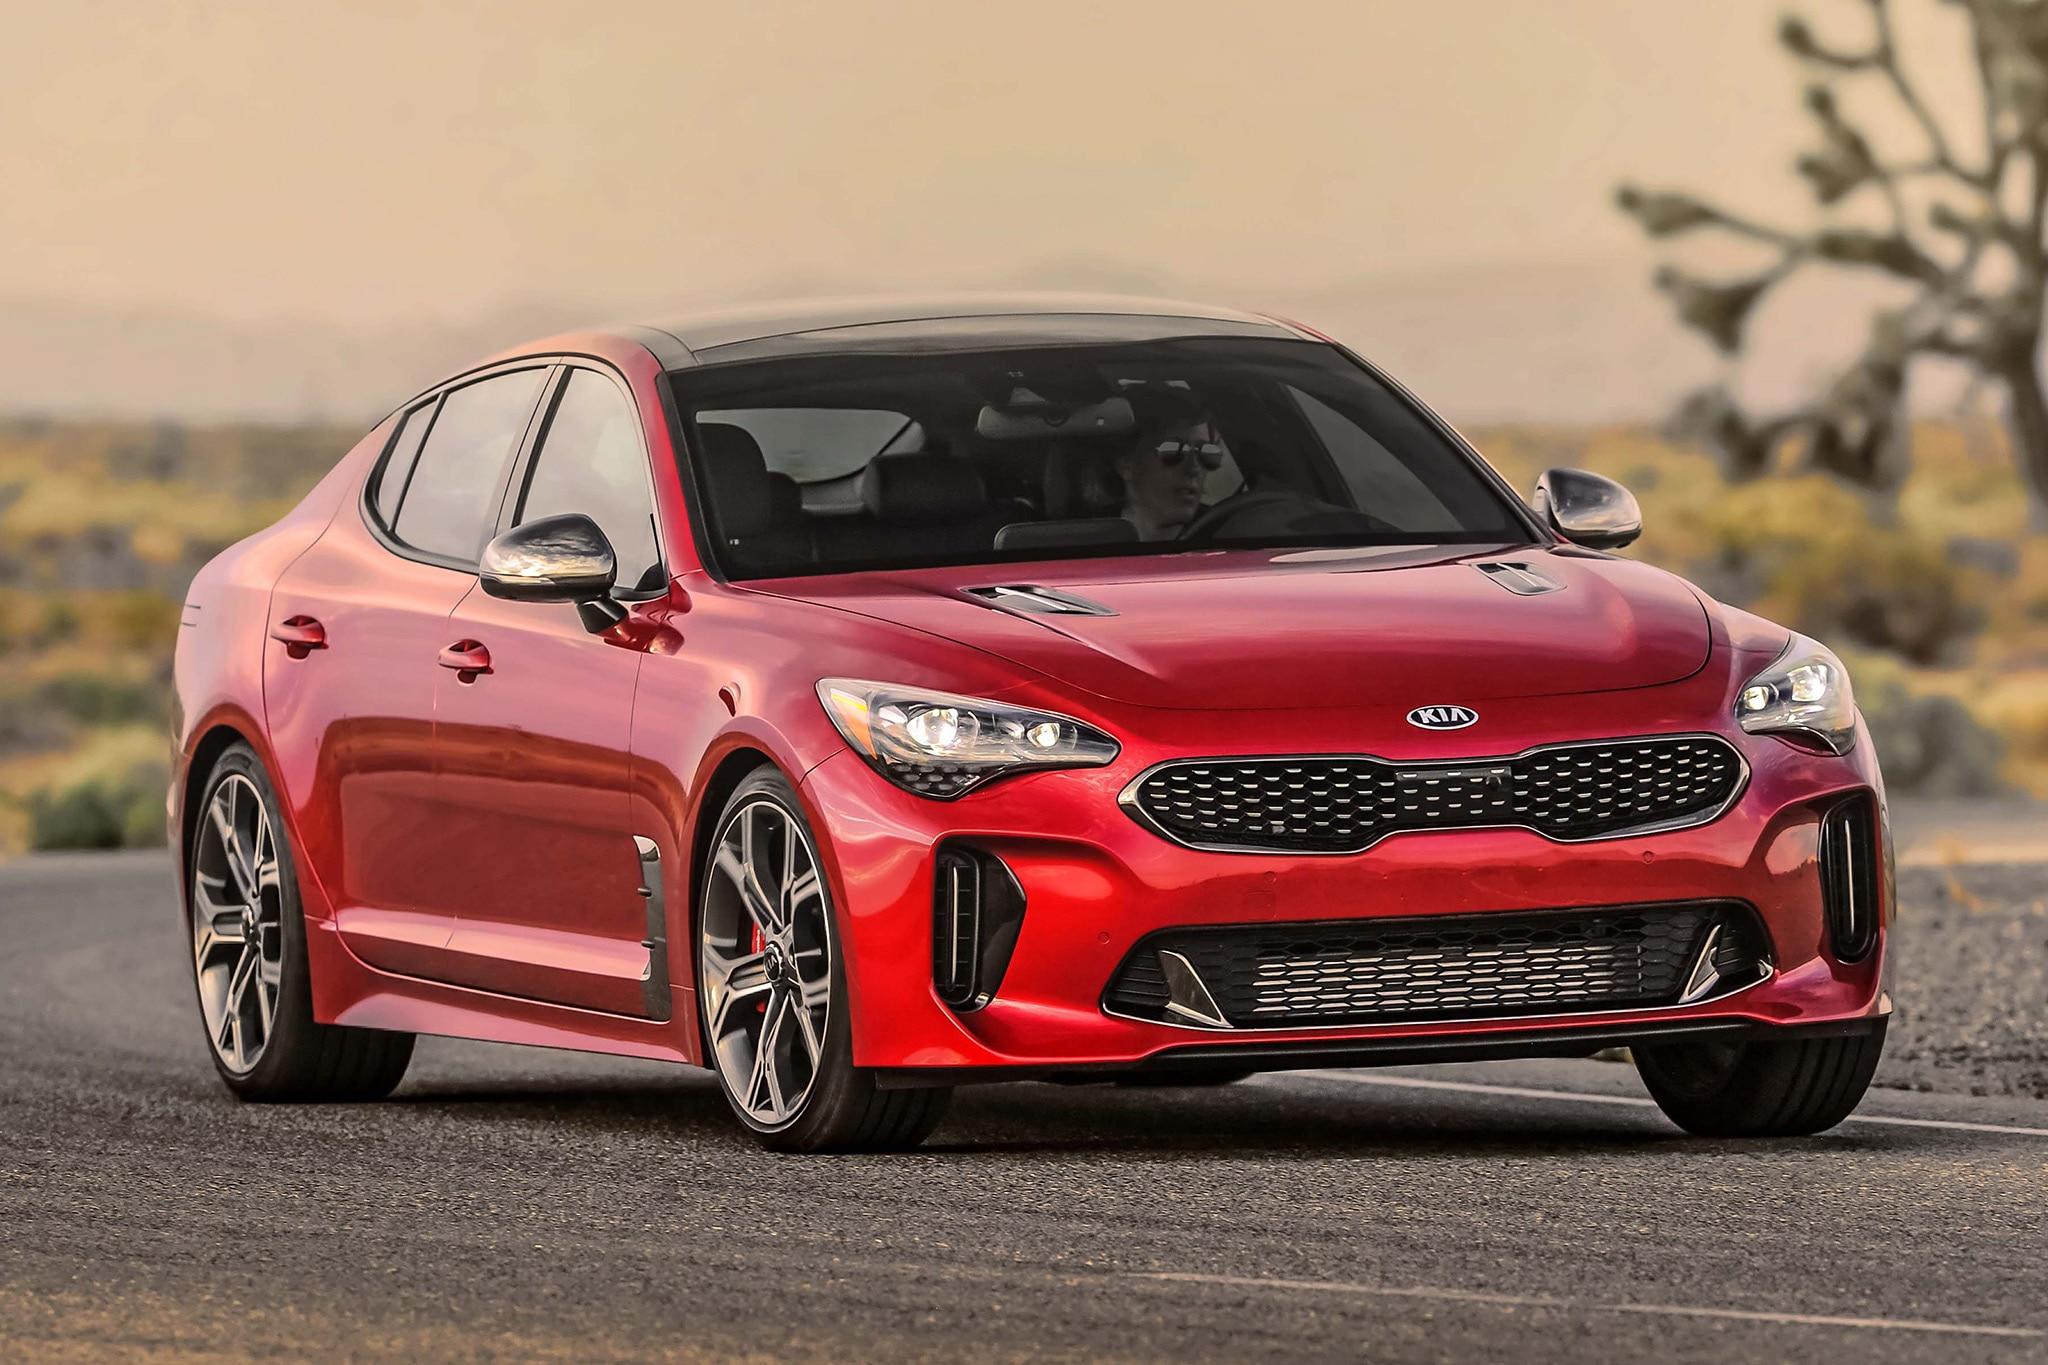 2018 kia stinger gt quick take review automobile magazine. Black Bedroom Furniture Sets. Home Design Ideas